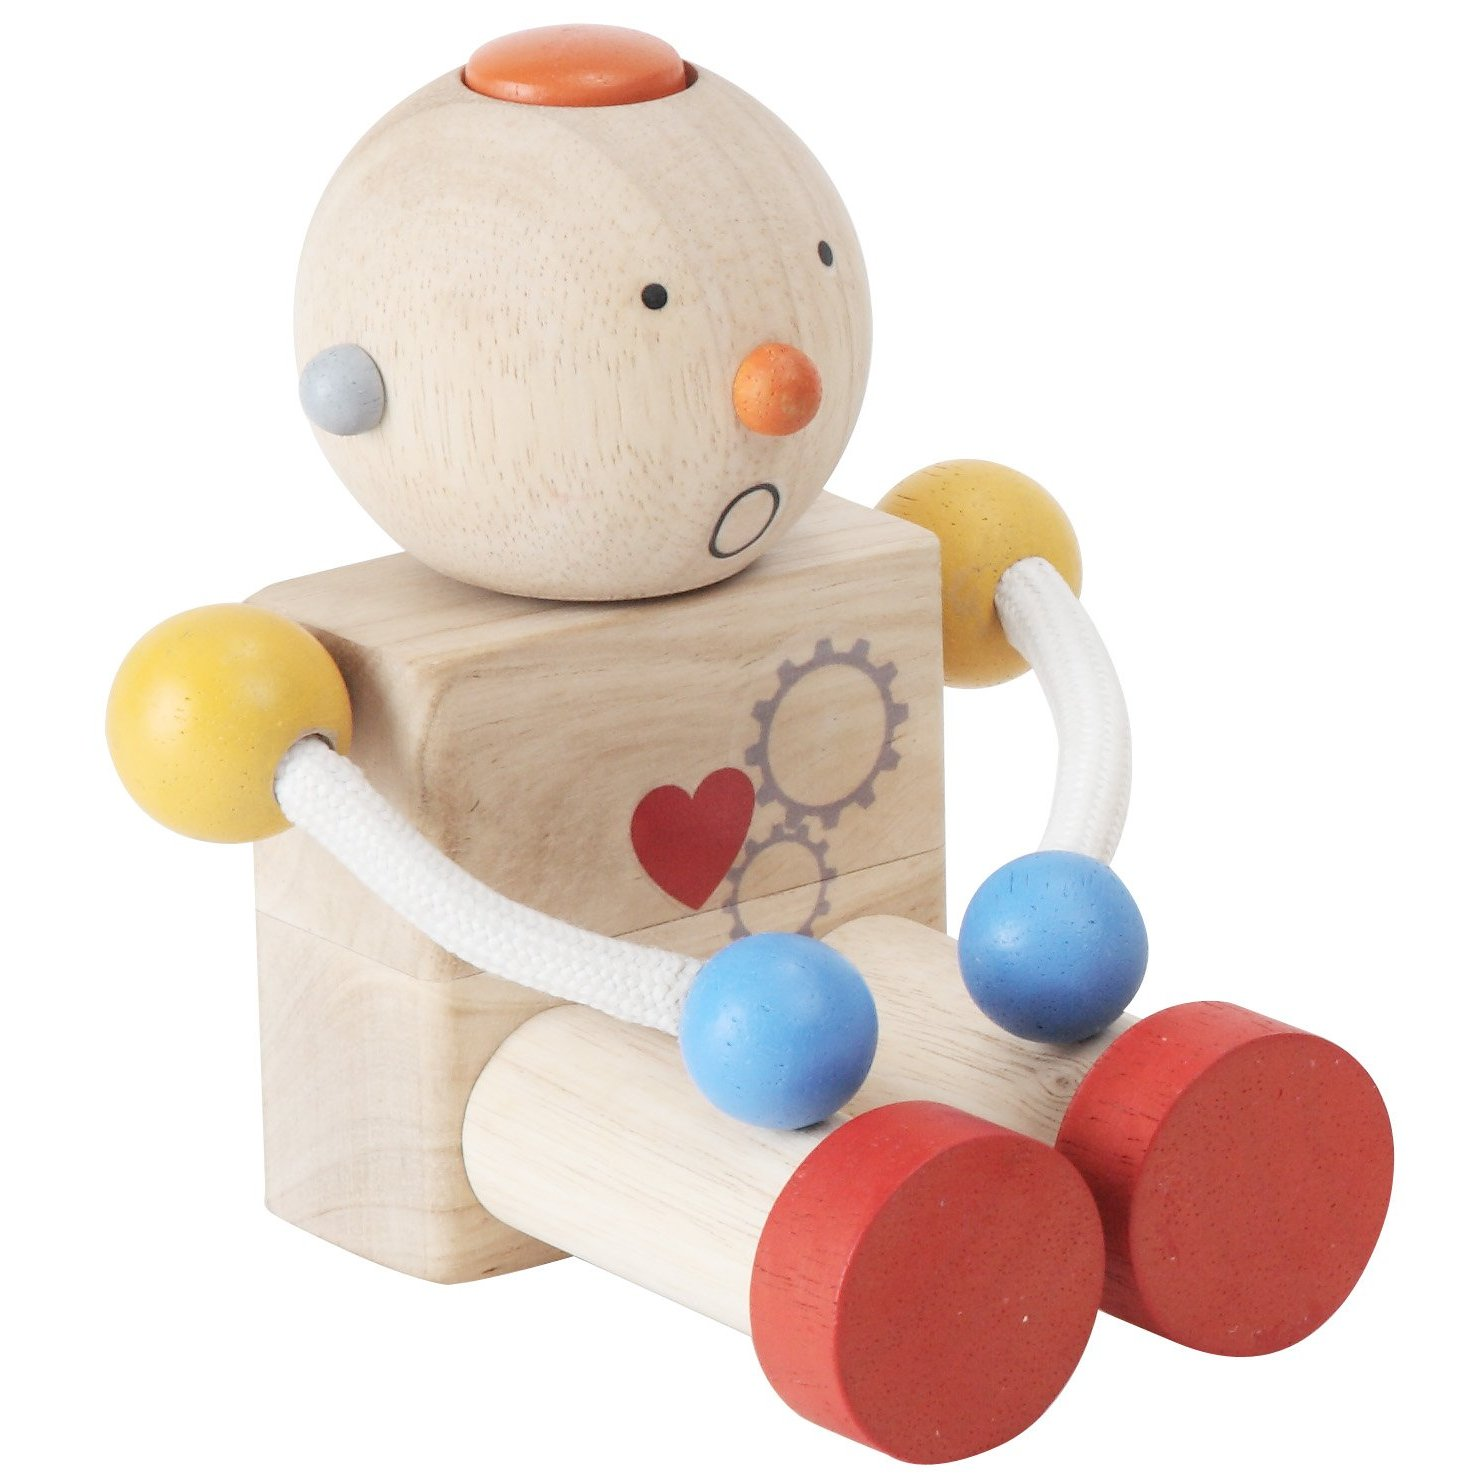 Boys Best Toys For Autism : Autism toy is one of s best toys